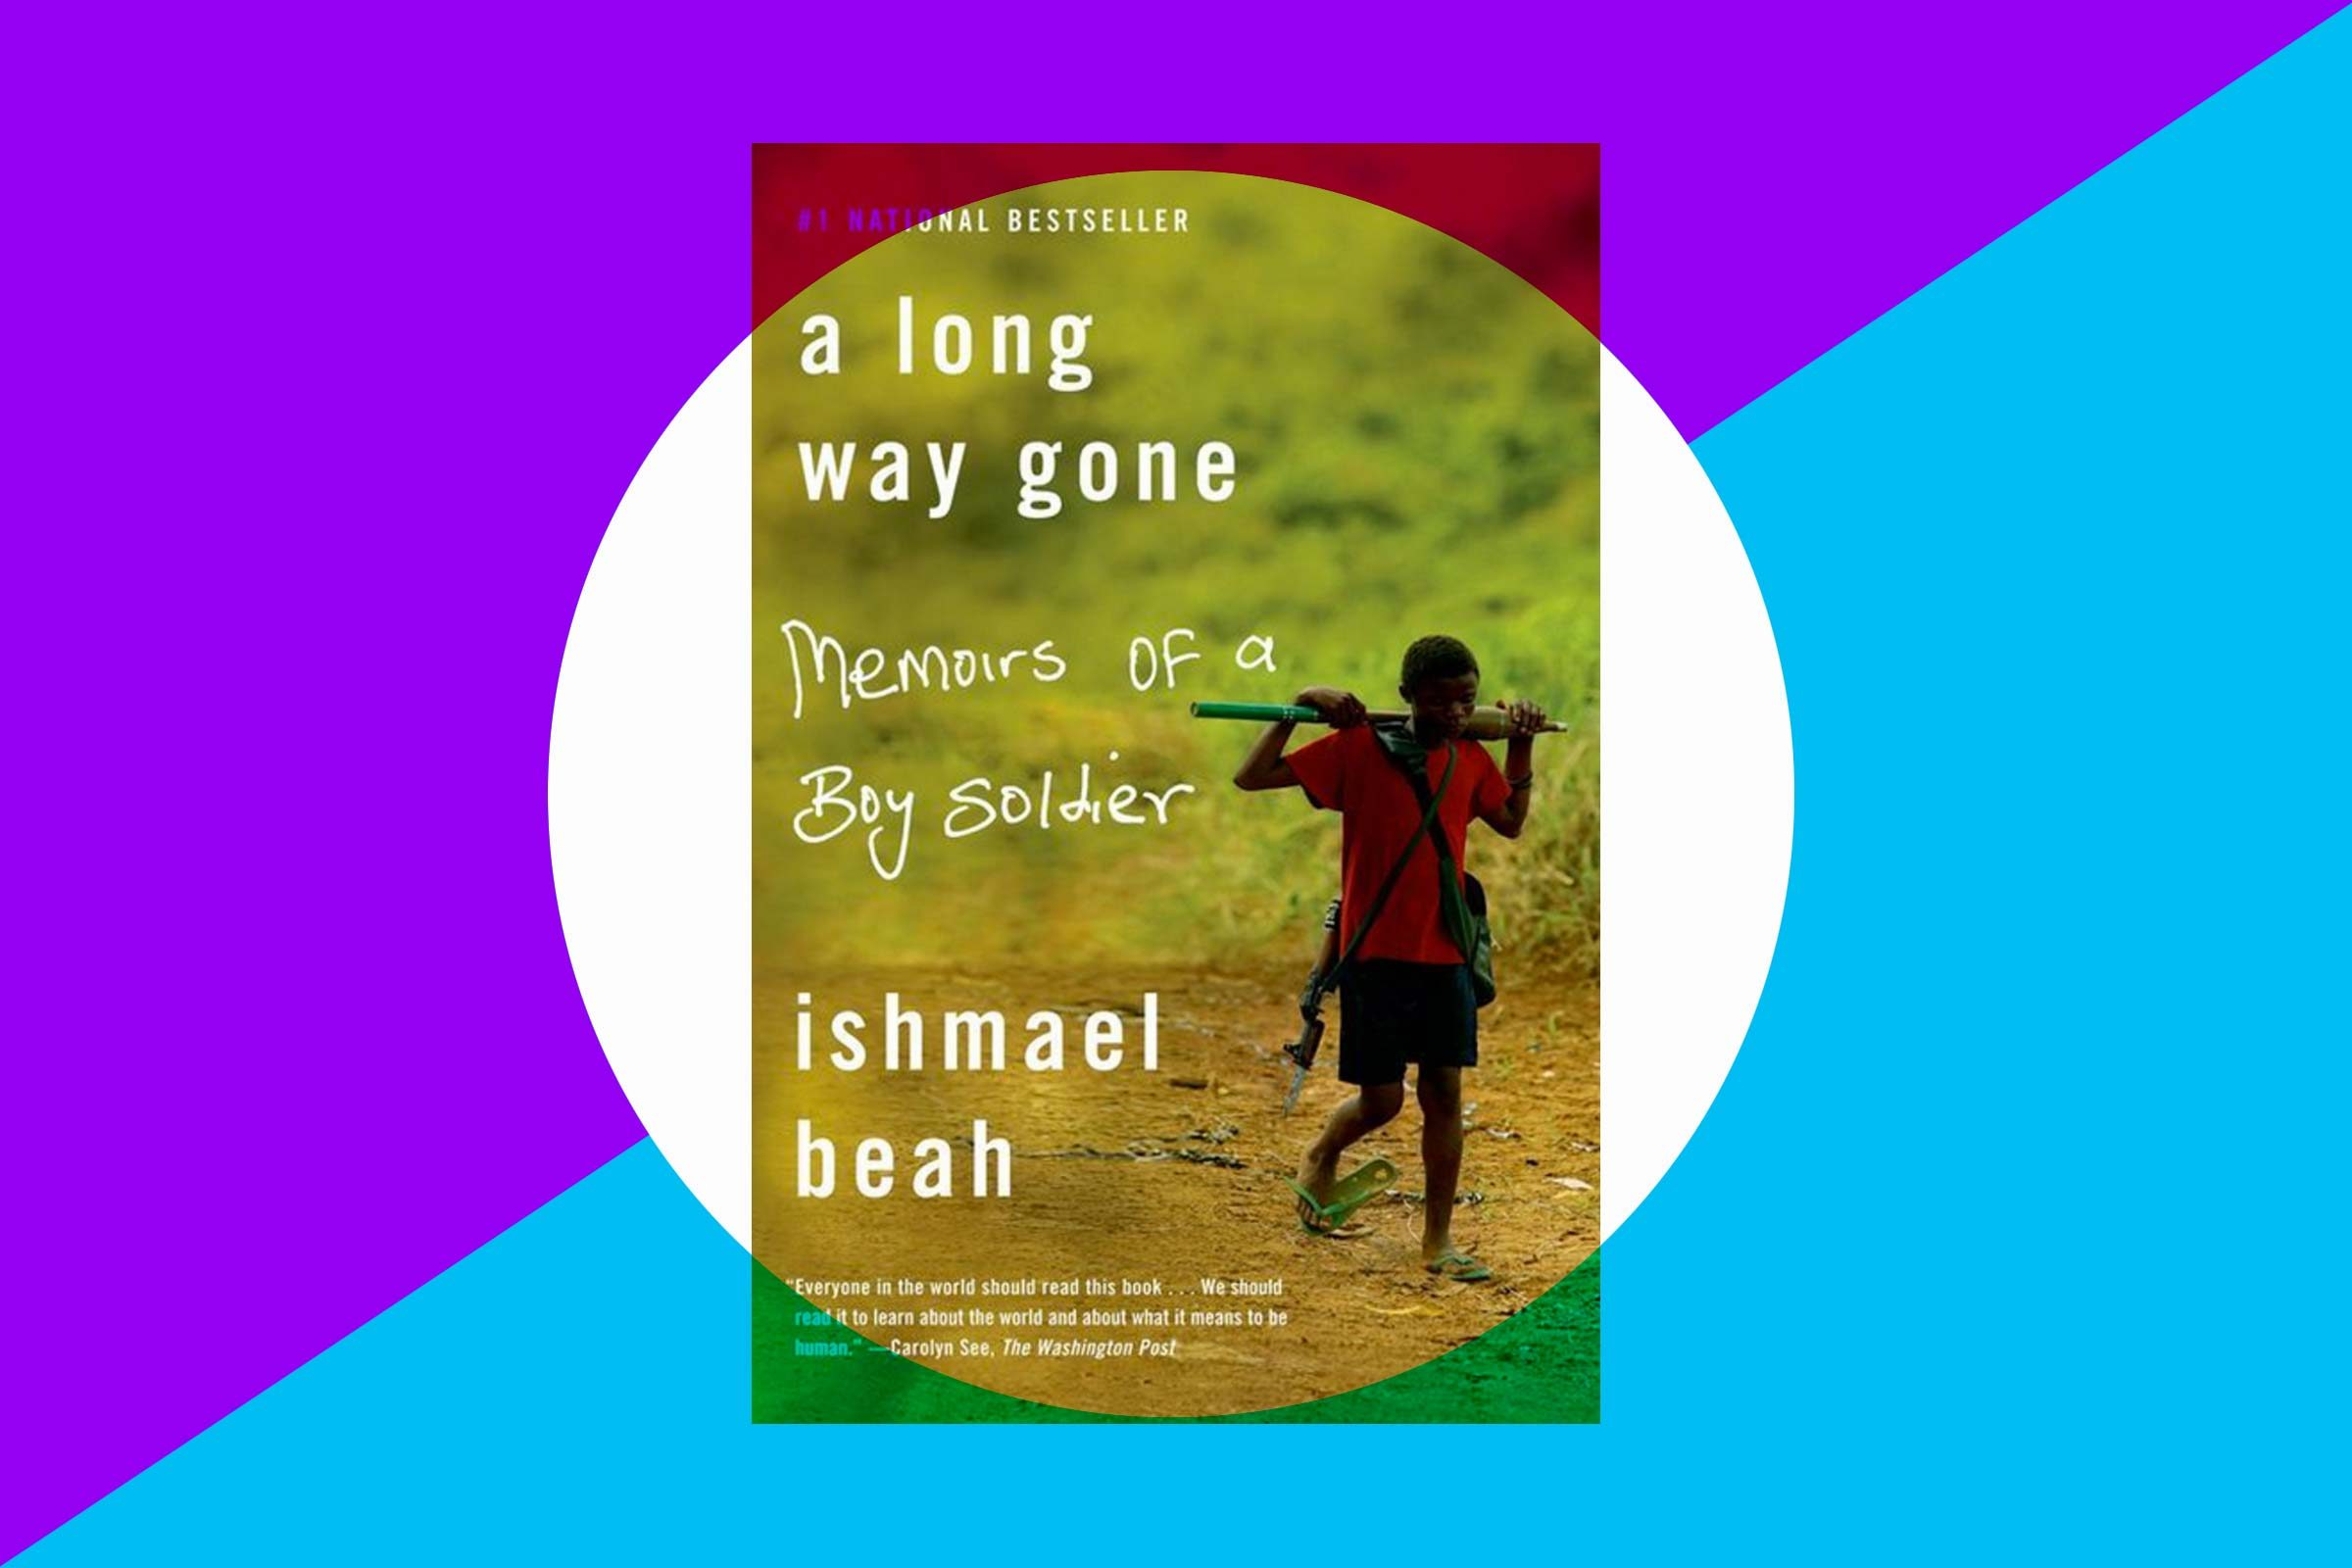 a literary analysis of a long way gone by ishmael beah